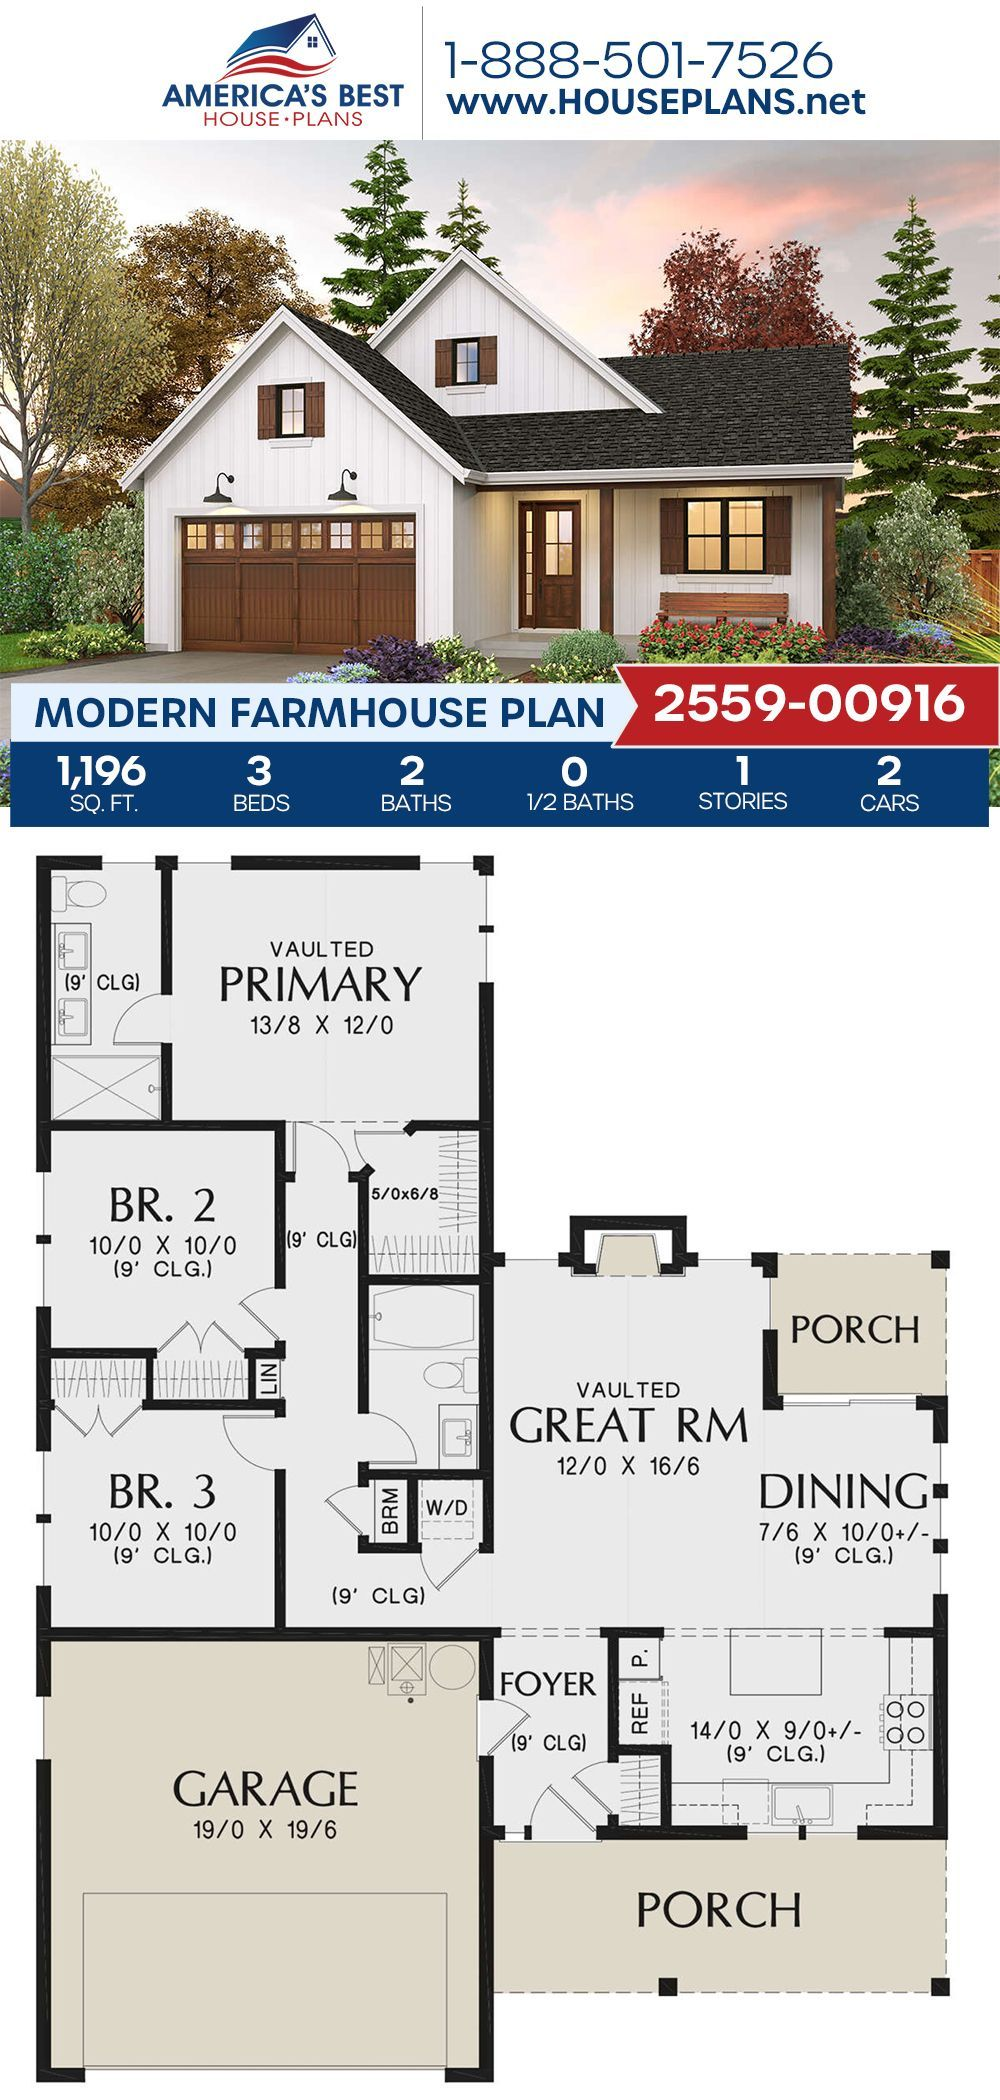 House Plan 2559 00916 Modern Farmhouse Plan 1 196 Square Feet 3 Bedrooms 2 Bathrooms Modern Farmhouse Plans Cottage Floor Plans Farmhouse Plans